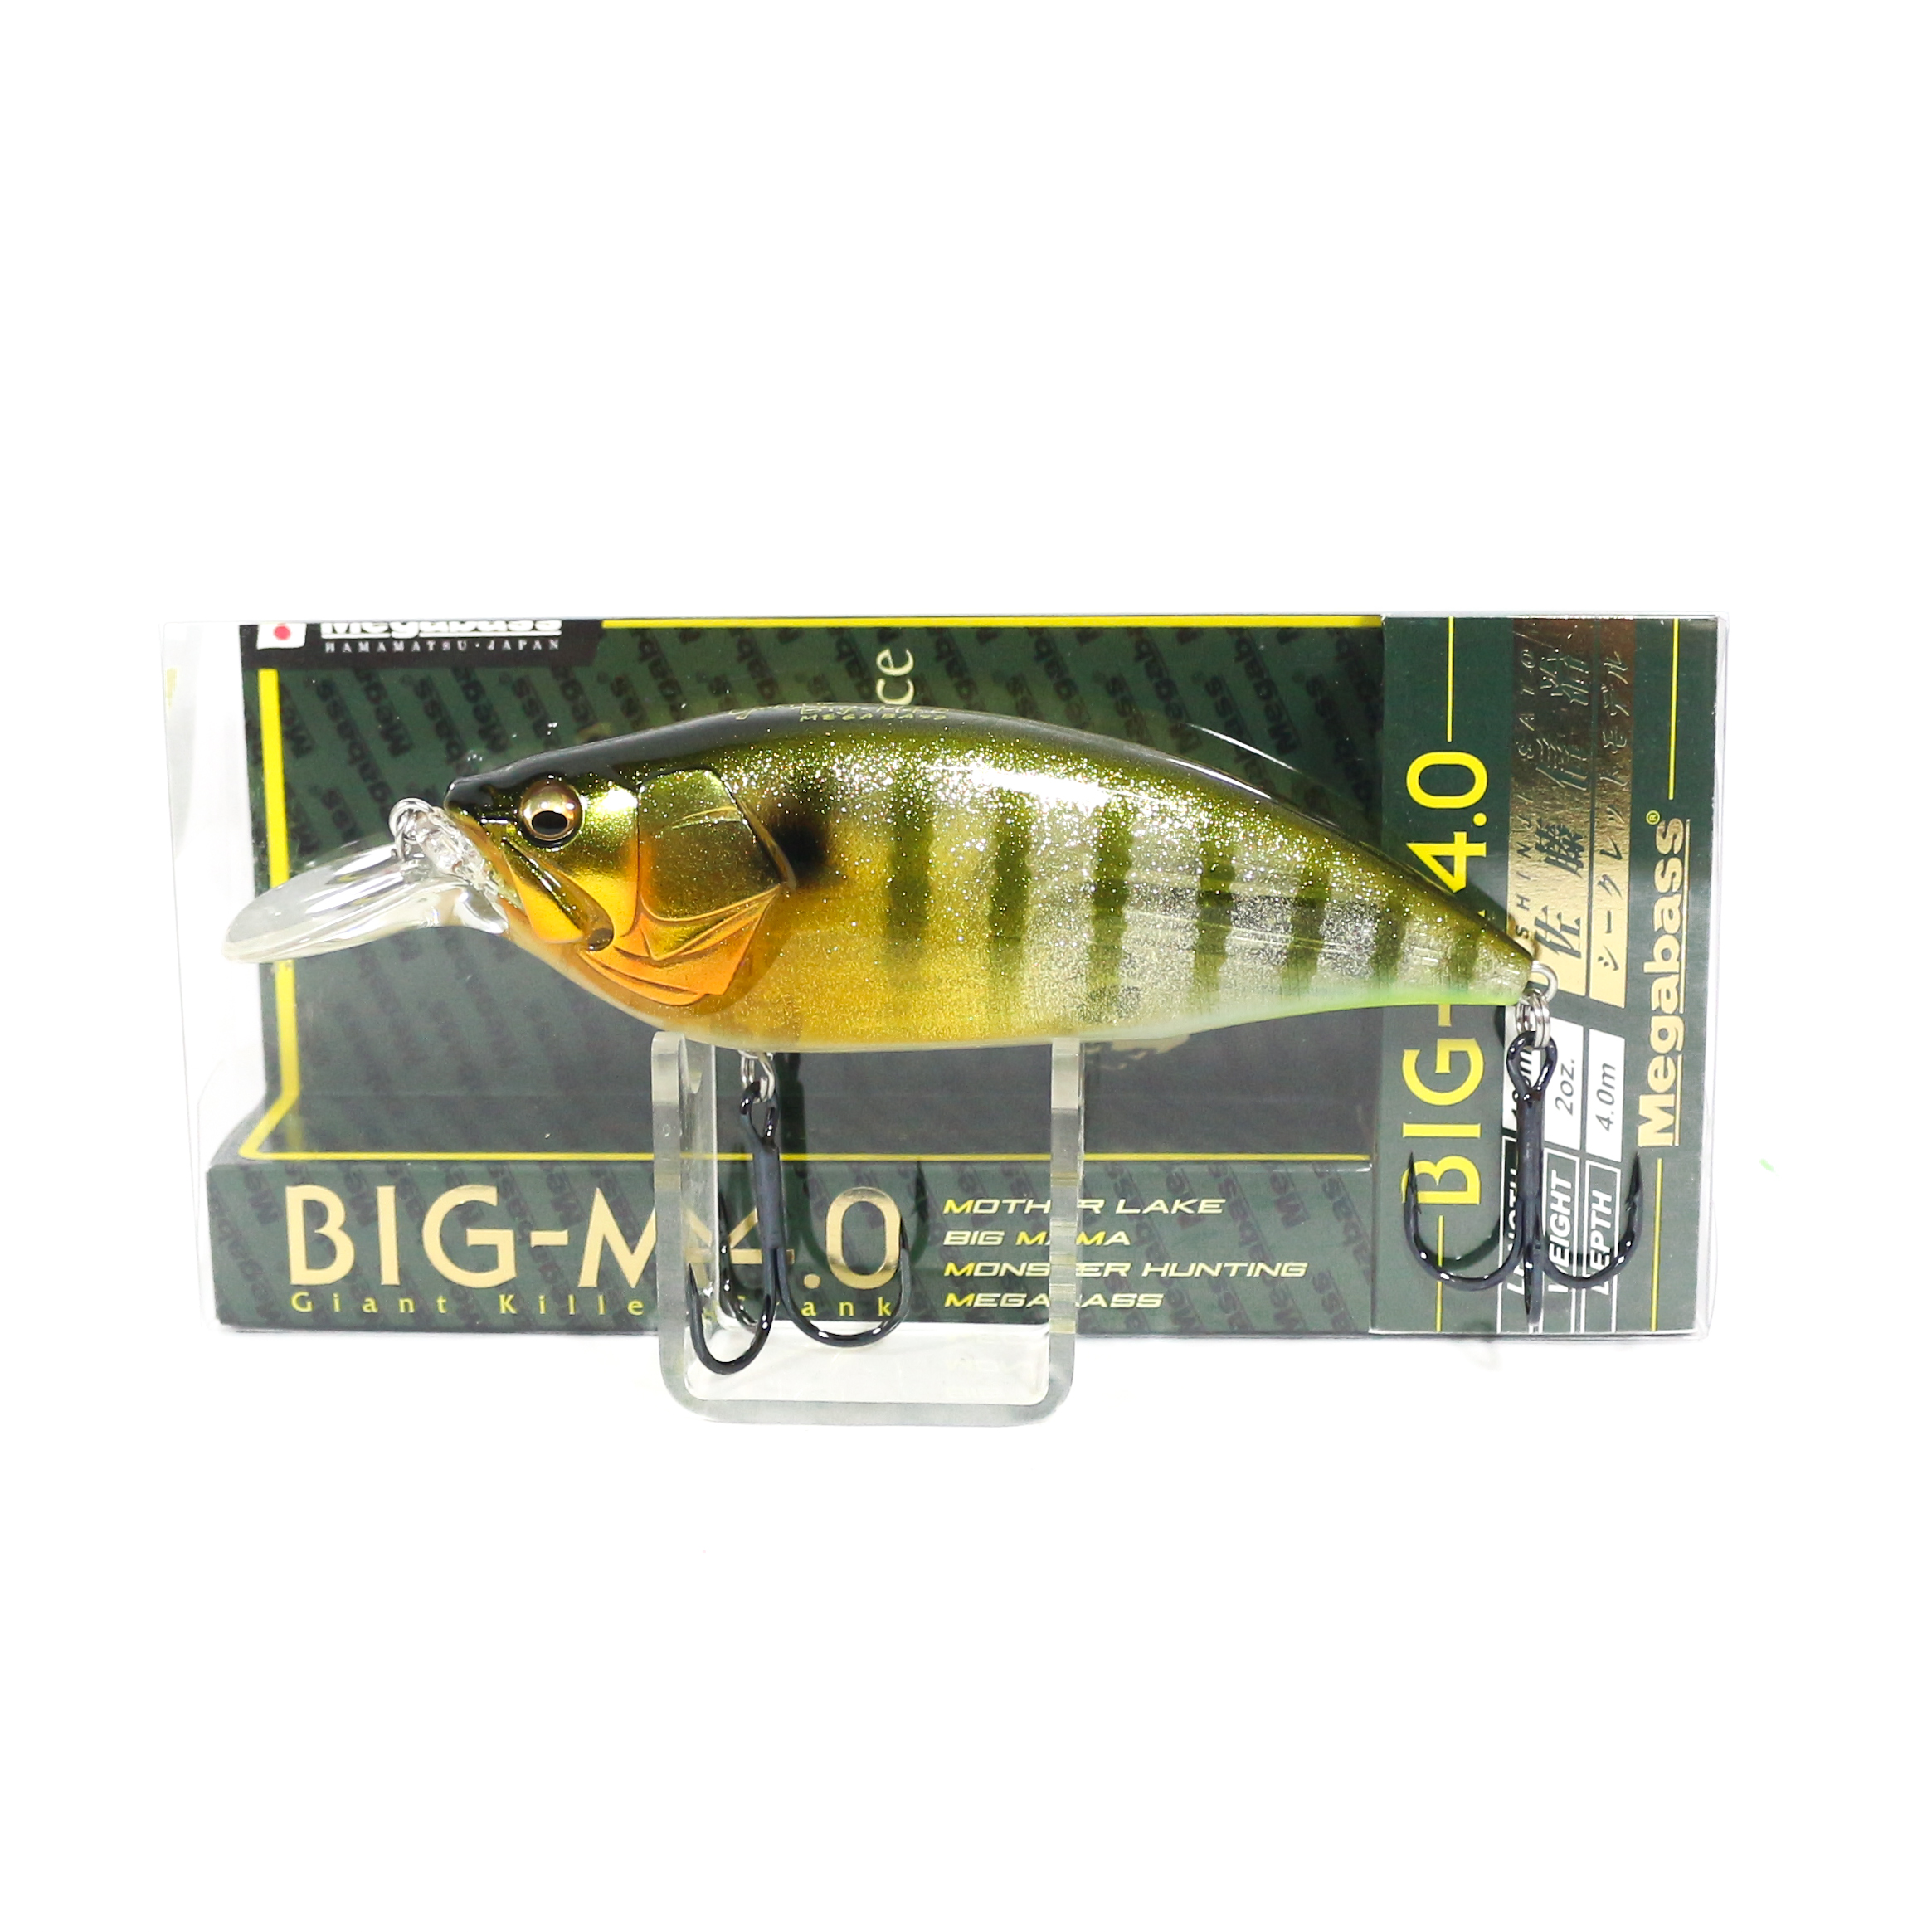 Megabass Big M 4.0 Giant Crank 126 mm Floating Lure GLX Galaxy Gill (3235)